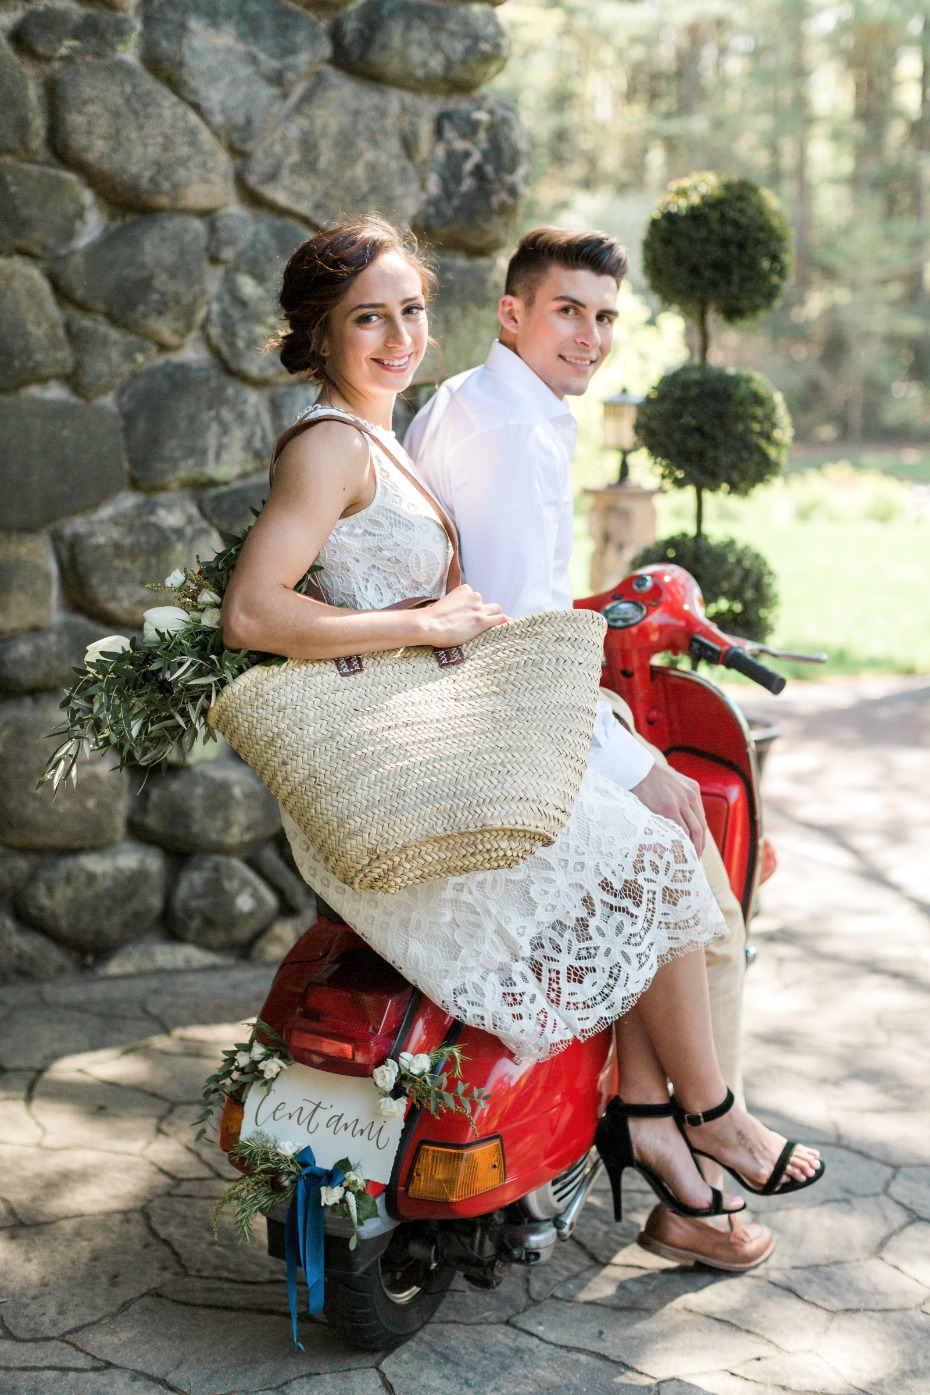 Getaway Vespa for this Italian wedding inspiration